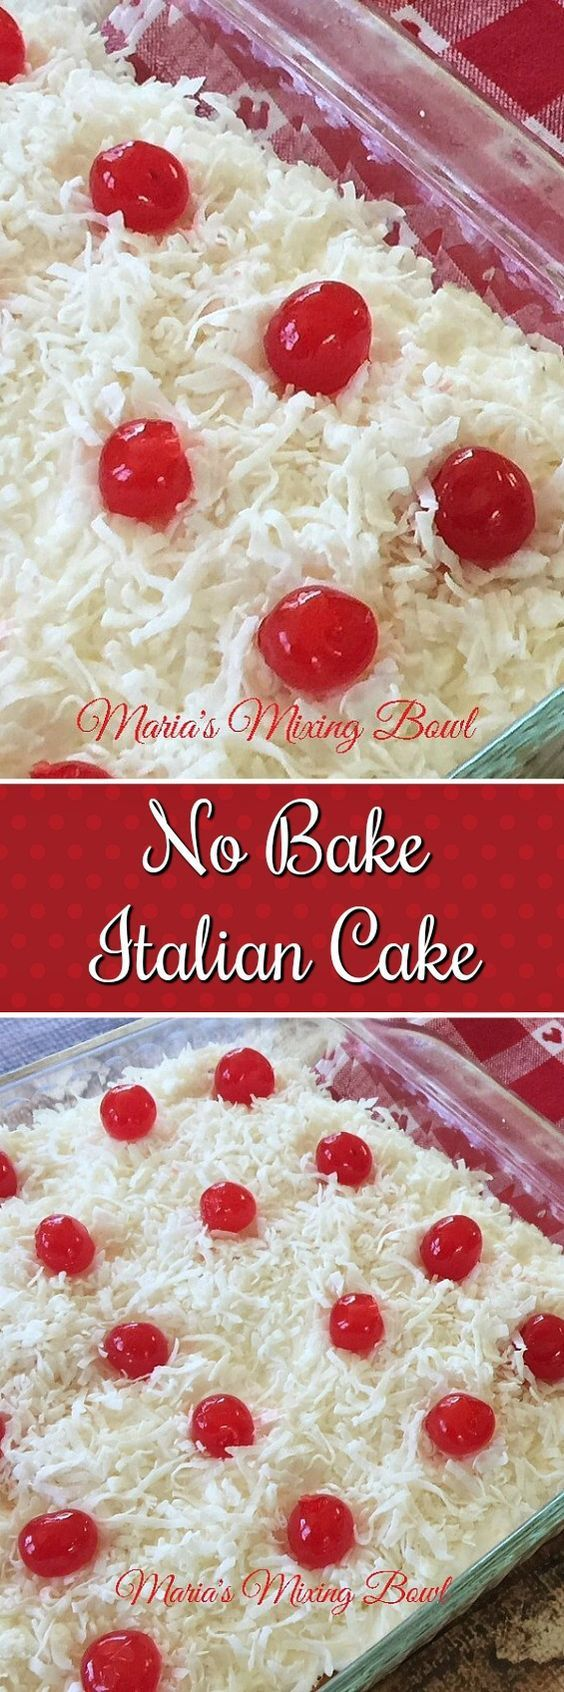 This NO BAKE ITALIAN CAKE is like heaven in your mouth!!! It's just that good!!! And you don't even have to turn on the oven to make it!! Easy and Delicious is always the best!!! Your going to want to share this one!!